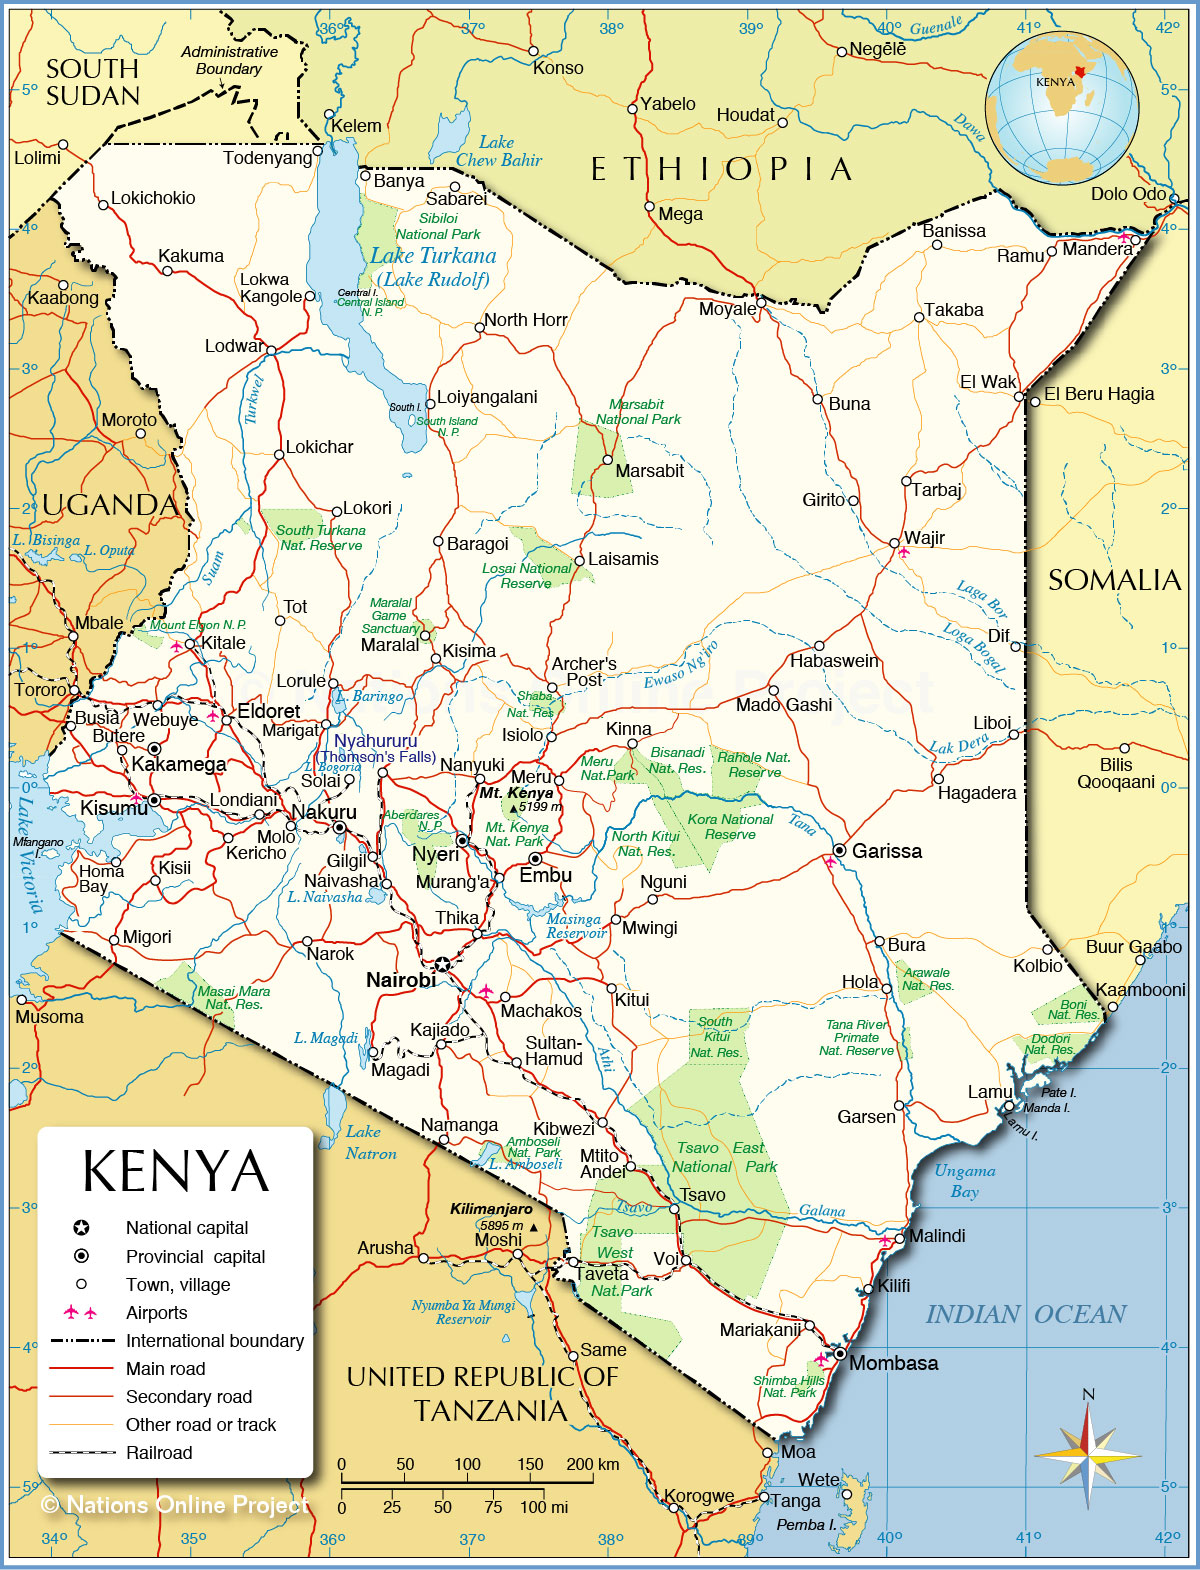 Political Map of Kenya Nations Online Project